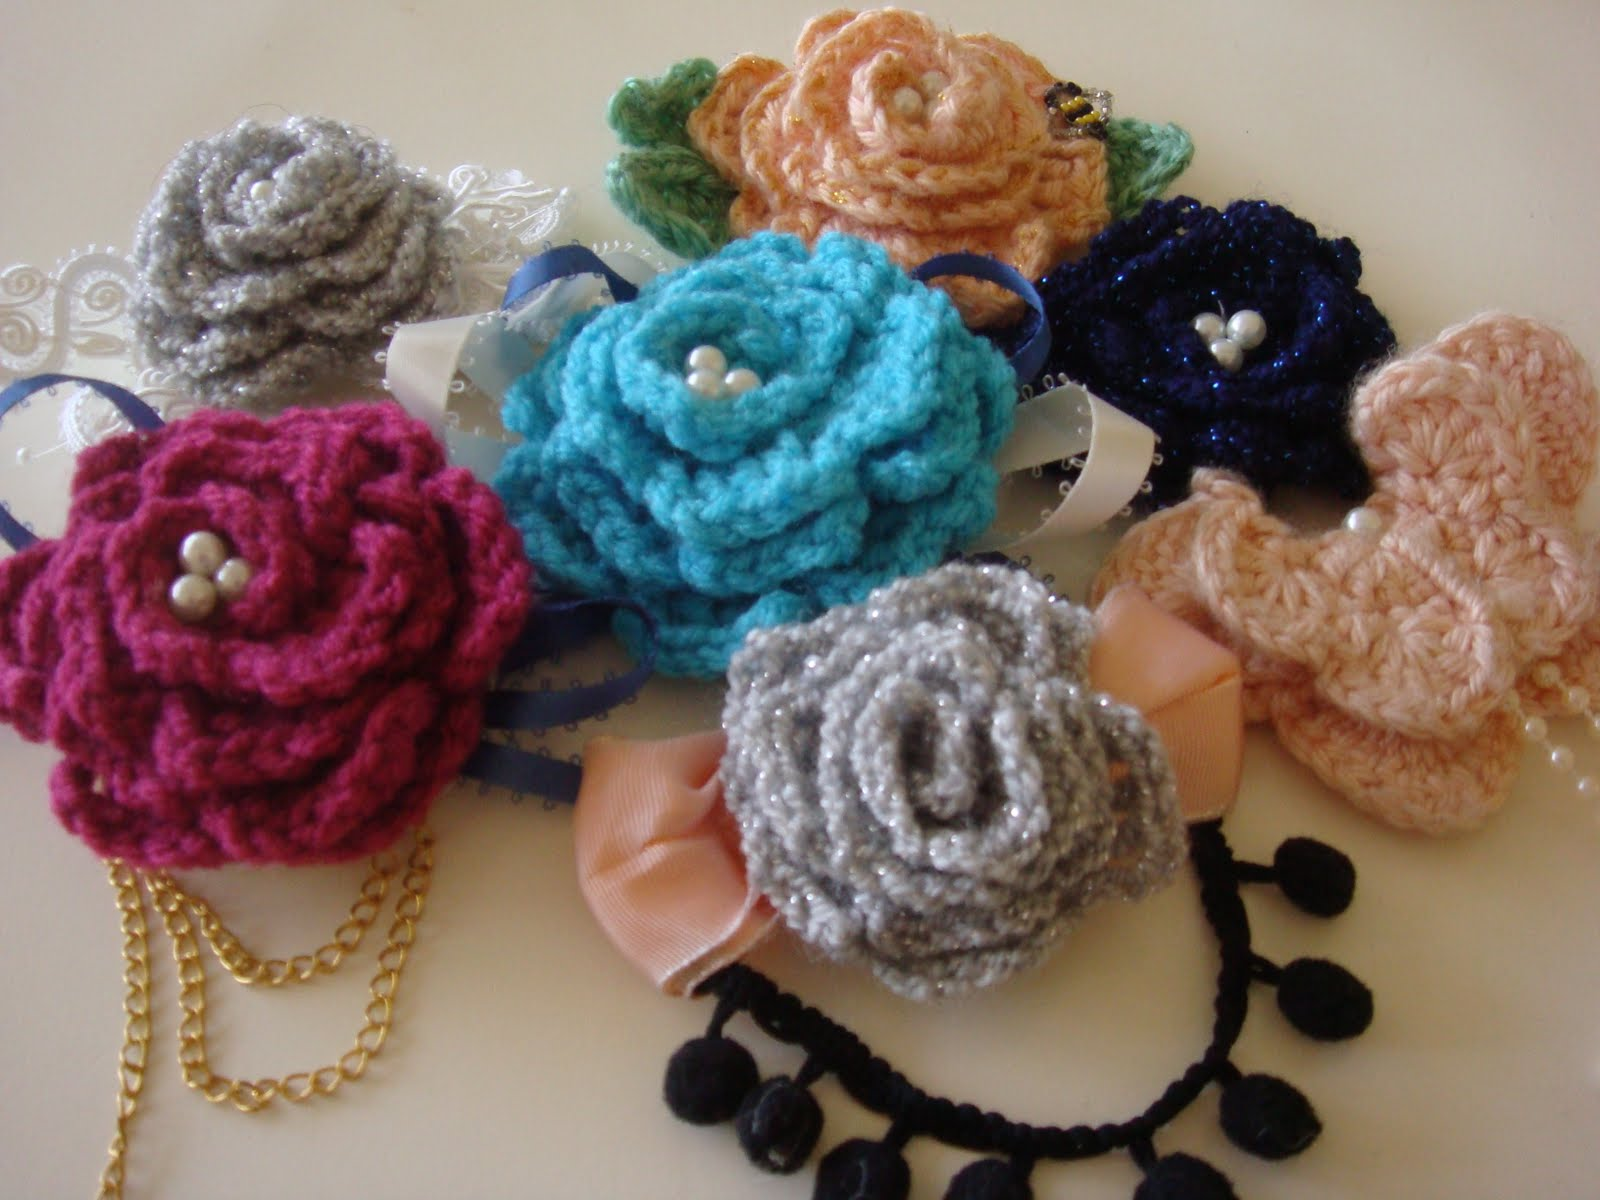 Crochet Hair Accessories Video : Crochet Pattern Central Free Hair Accessories Crochet Pattern 2015 ...